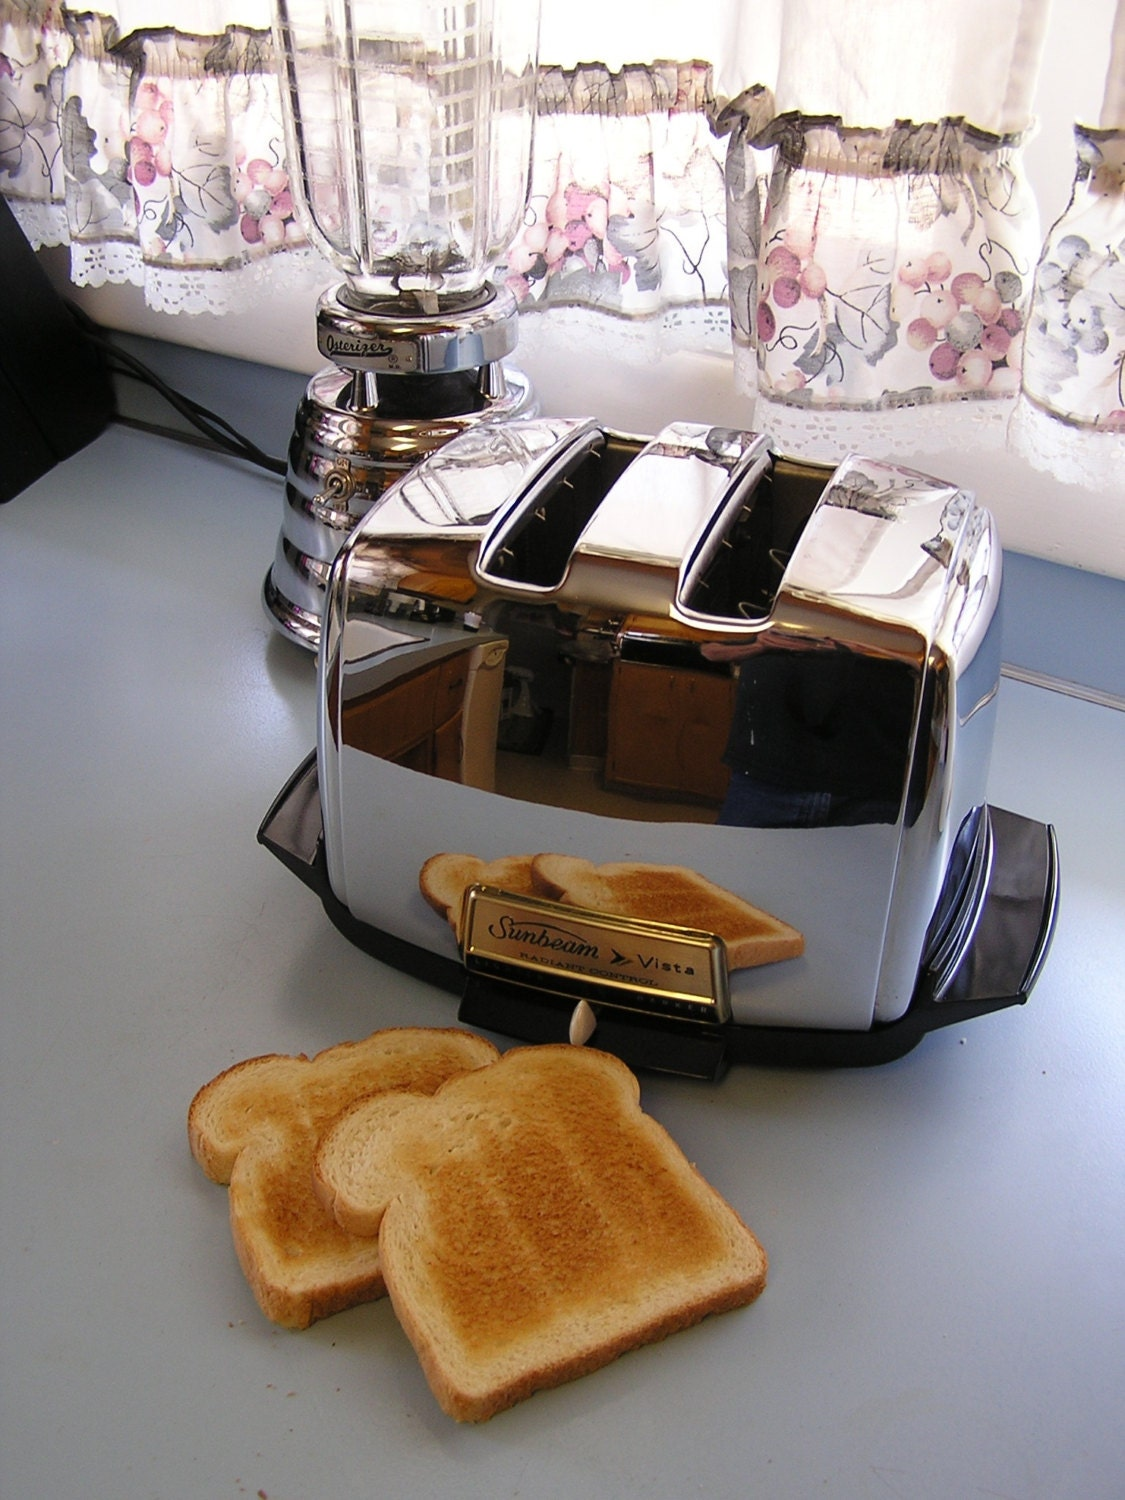 1960s Toaster With Bread ~ S sunbeam vista radiant control toaster